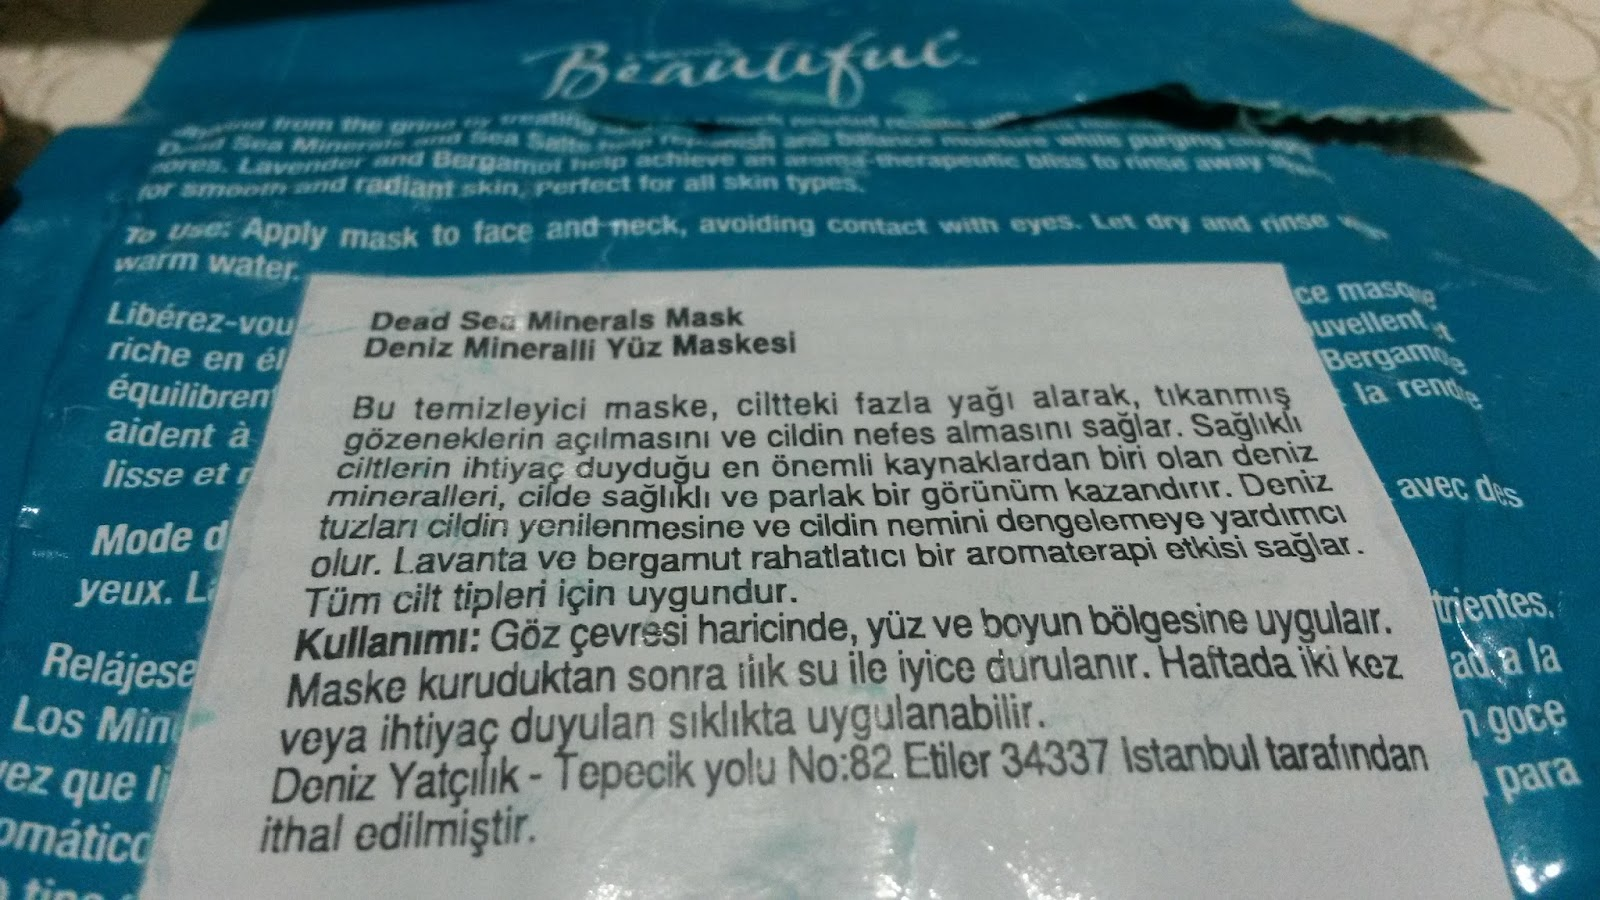 FREEMAN FACIAL ANTI-STRES MASK/ DENİZ MİNERALLİ YÜZ MASKESİ